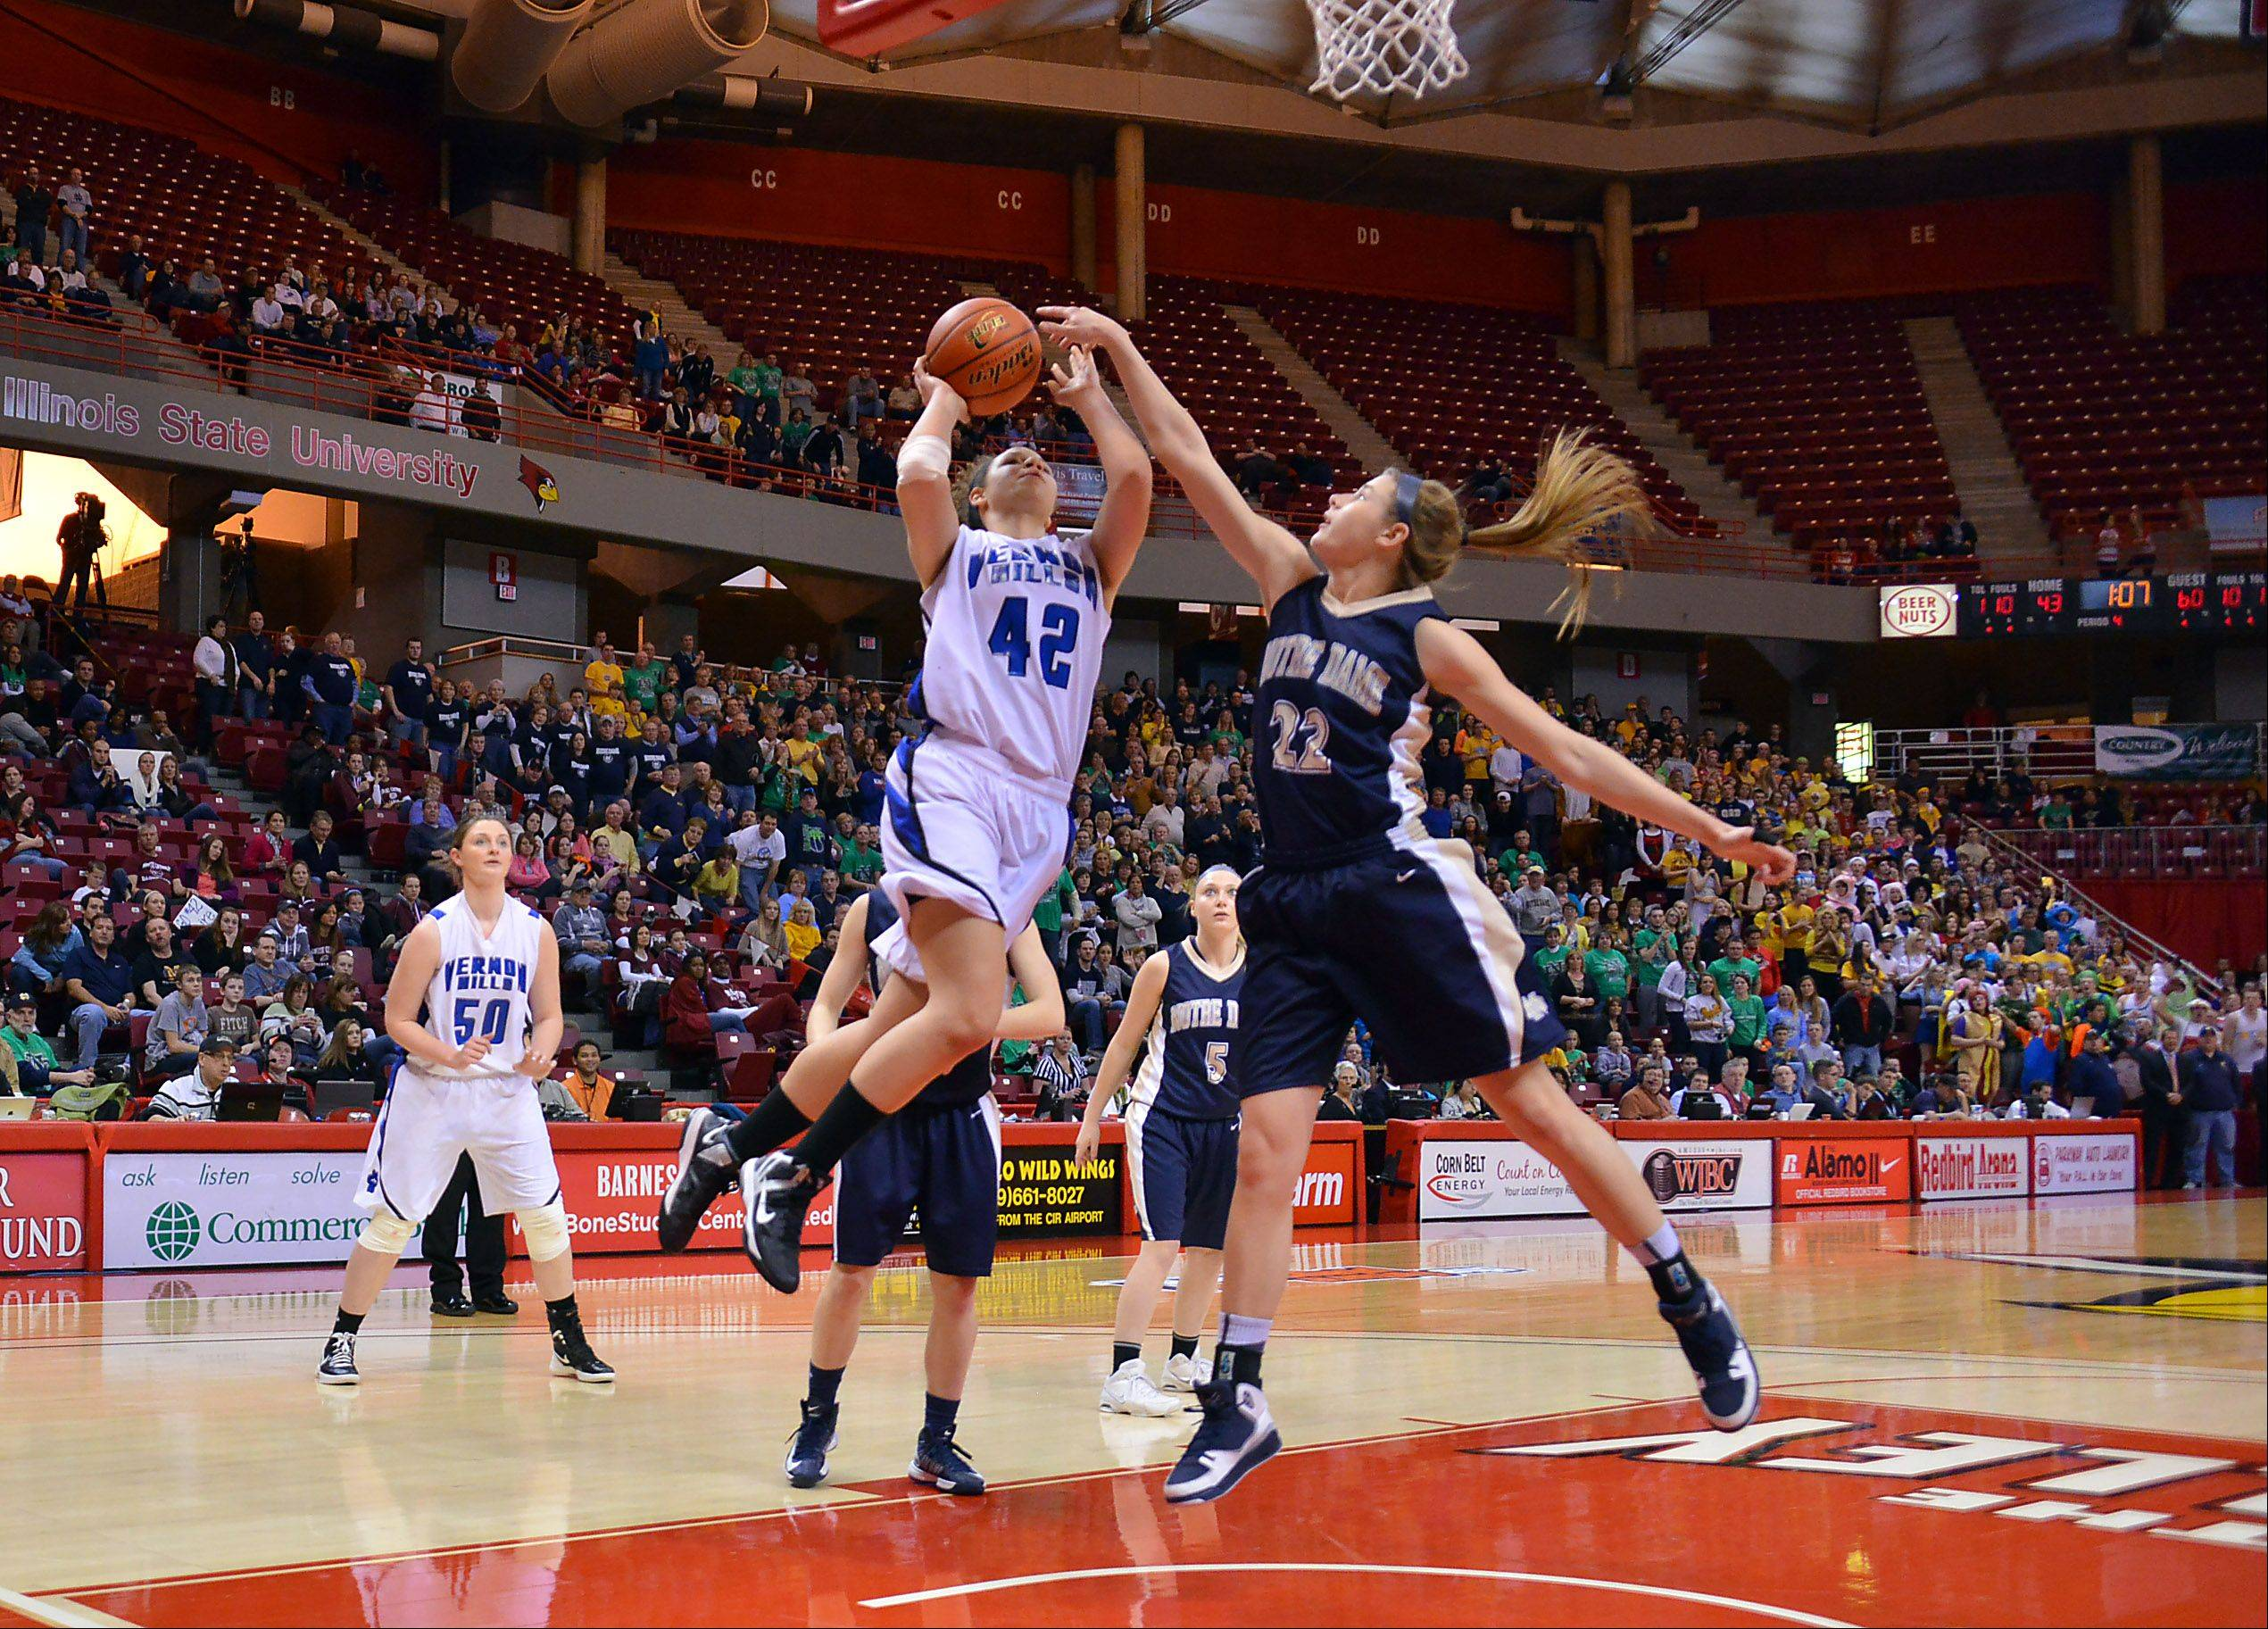 Vernon Hills Lauren Webb battles Quincy Notre Dame Notre Dame's Jordan Frericks under the basket late in the fourth quarter at the Class 3A state girls basketball championship in Normal on Saturday.